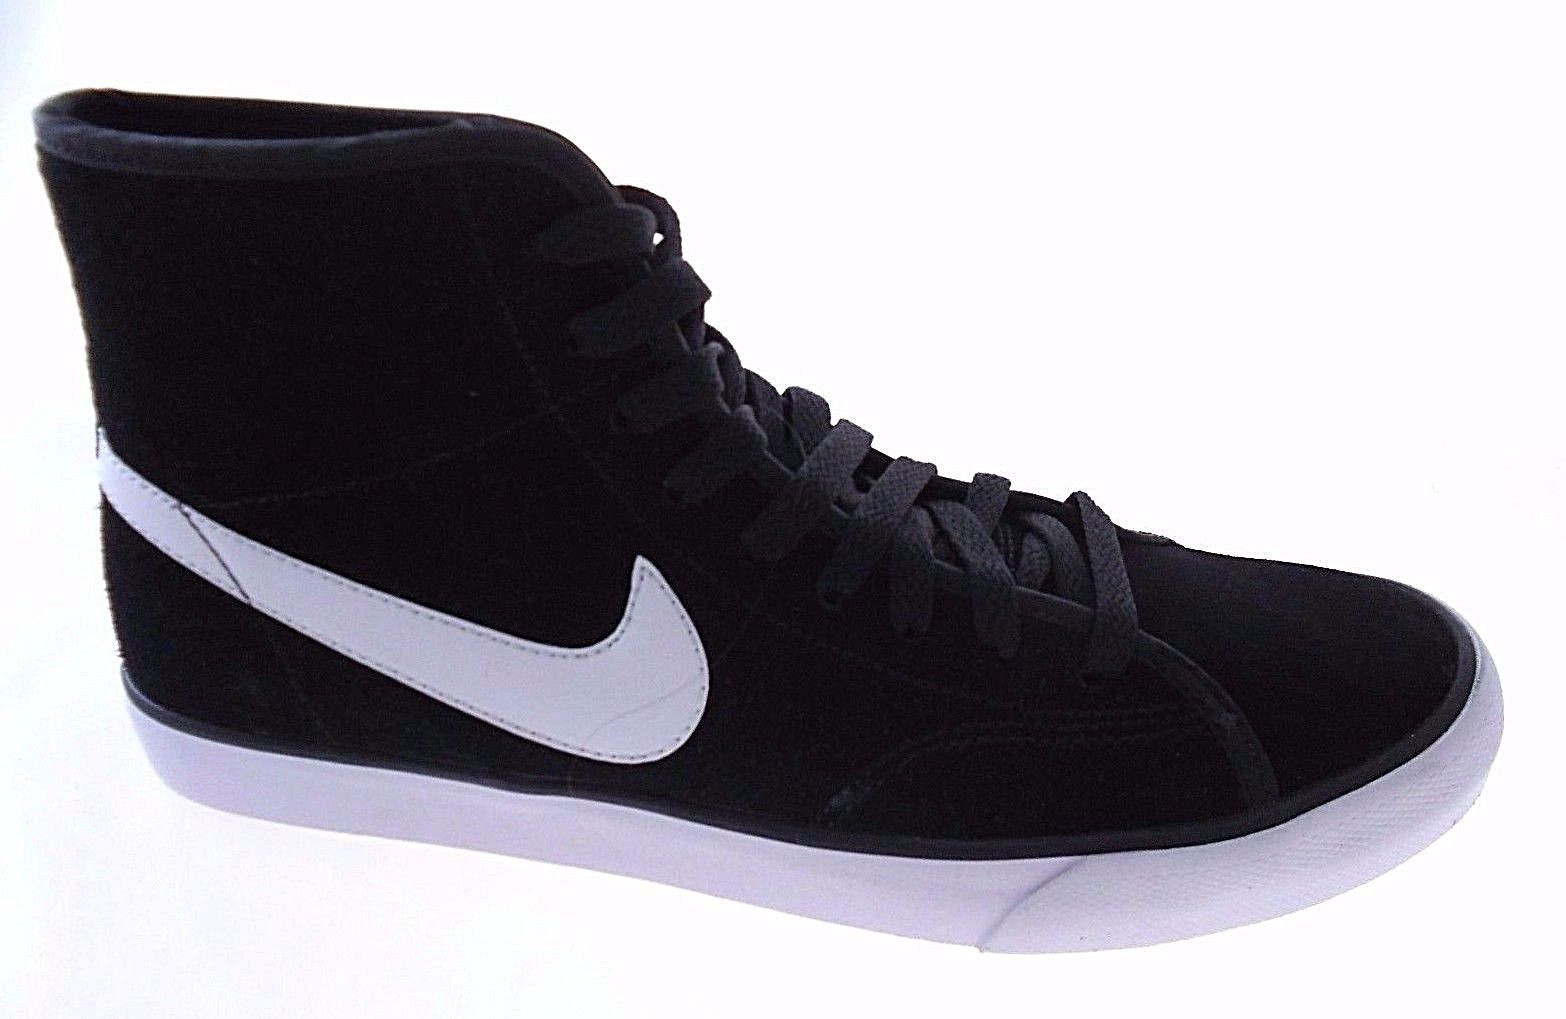 5e067eba3473 NIKE PRIMO COURT MID SUEDE WOMEN S BLACK WHITE CASUAL SNEAKERS SZ 10